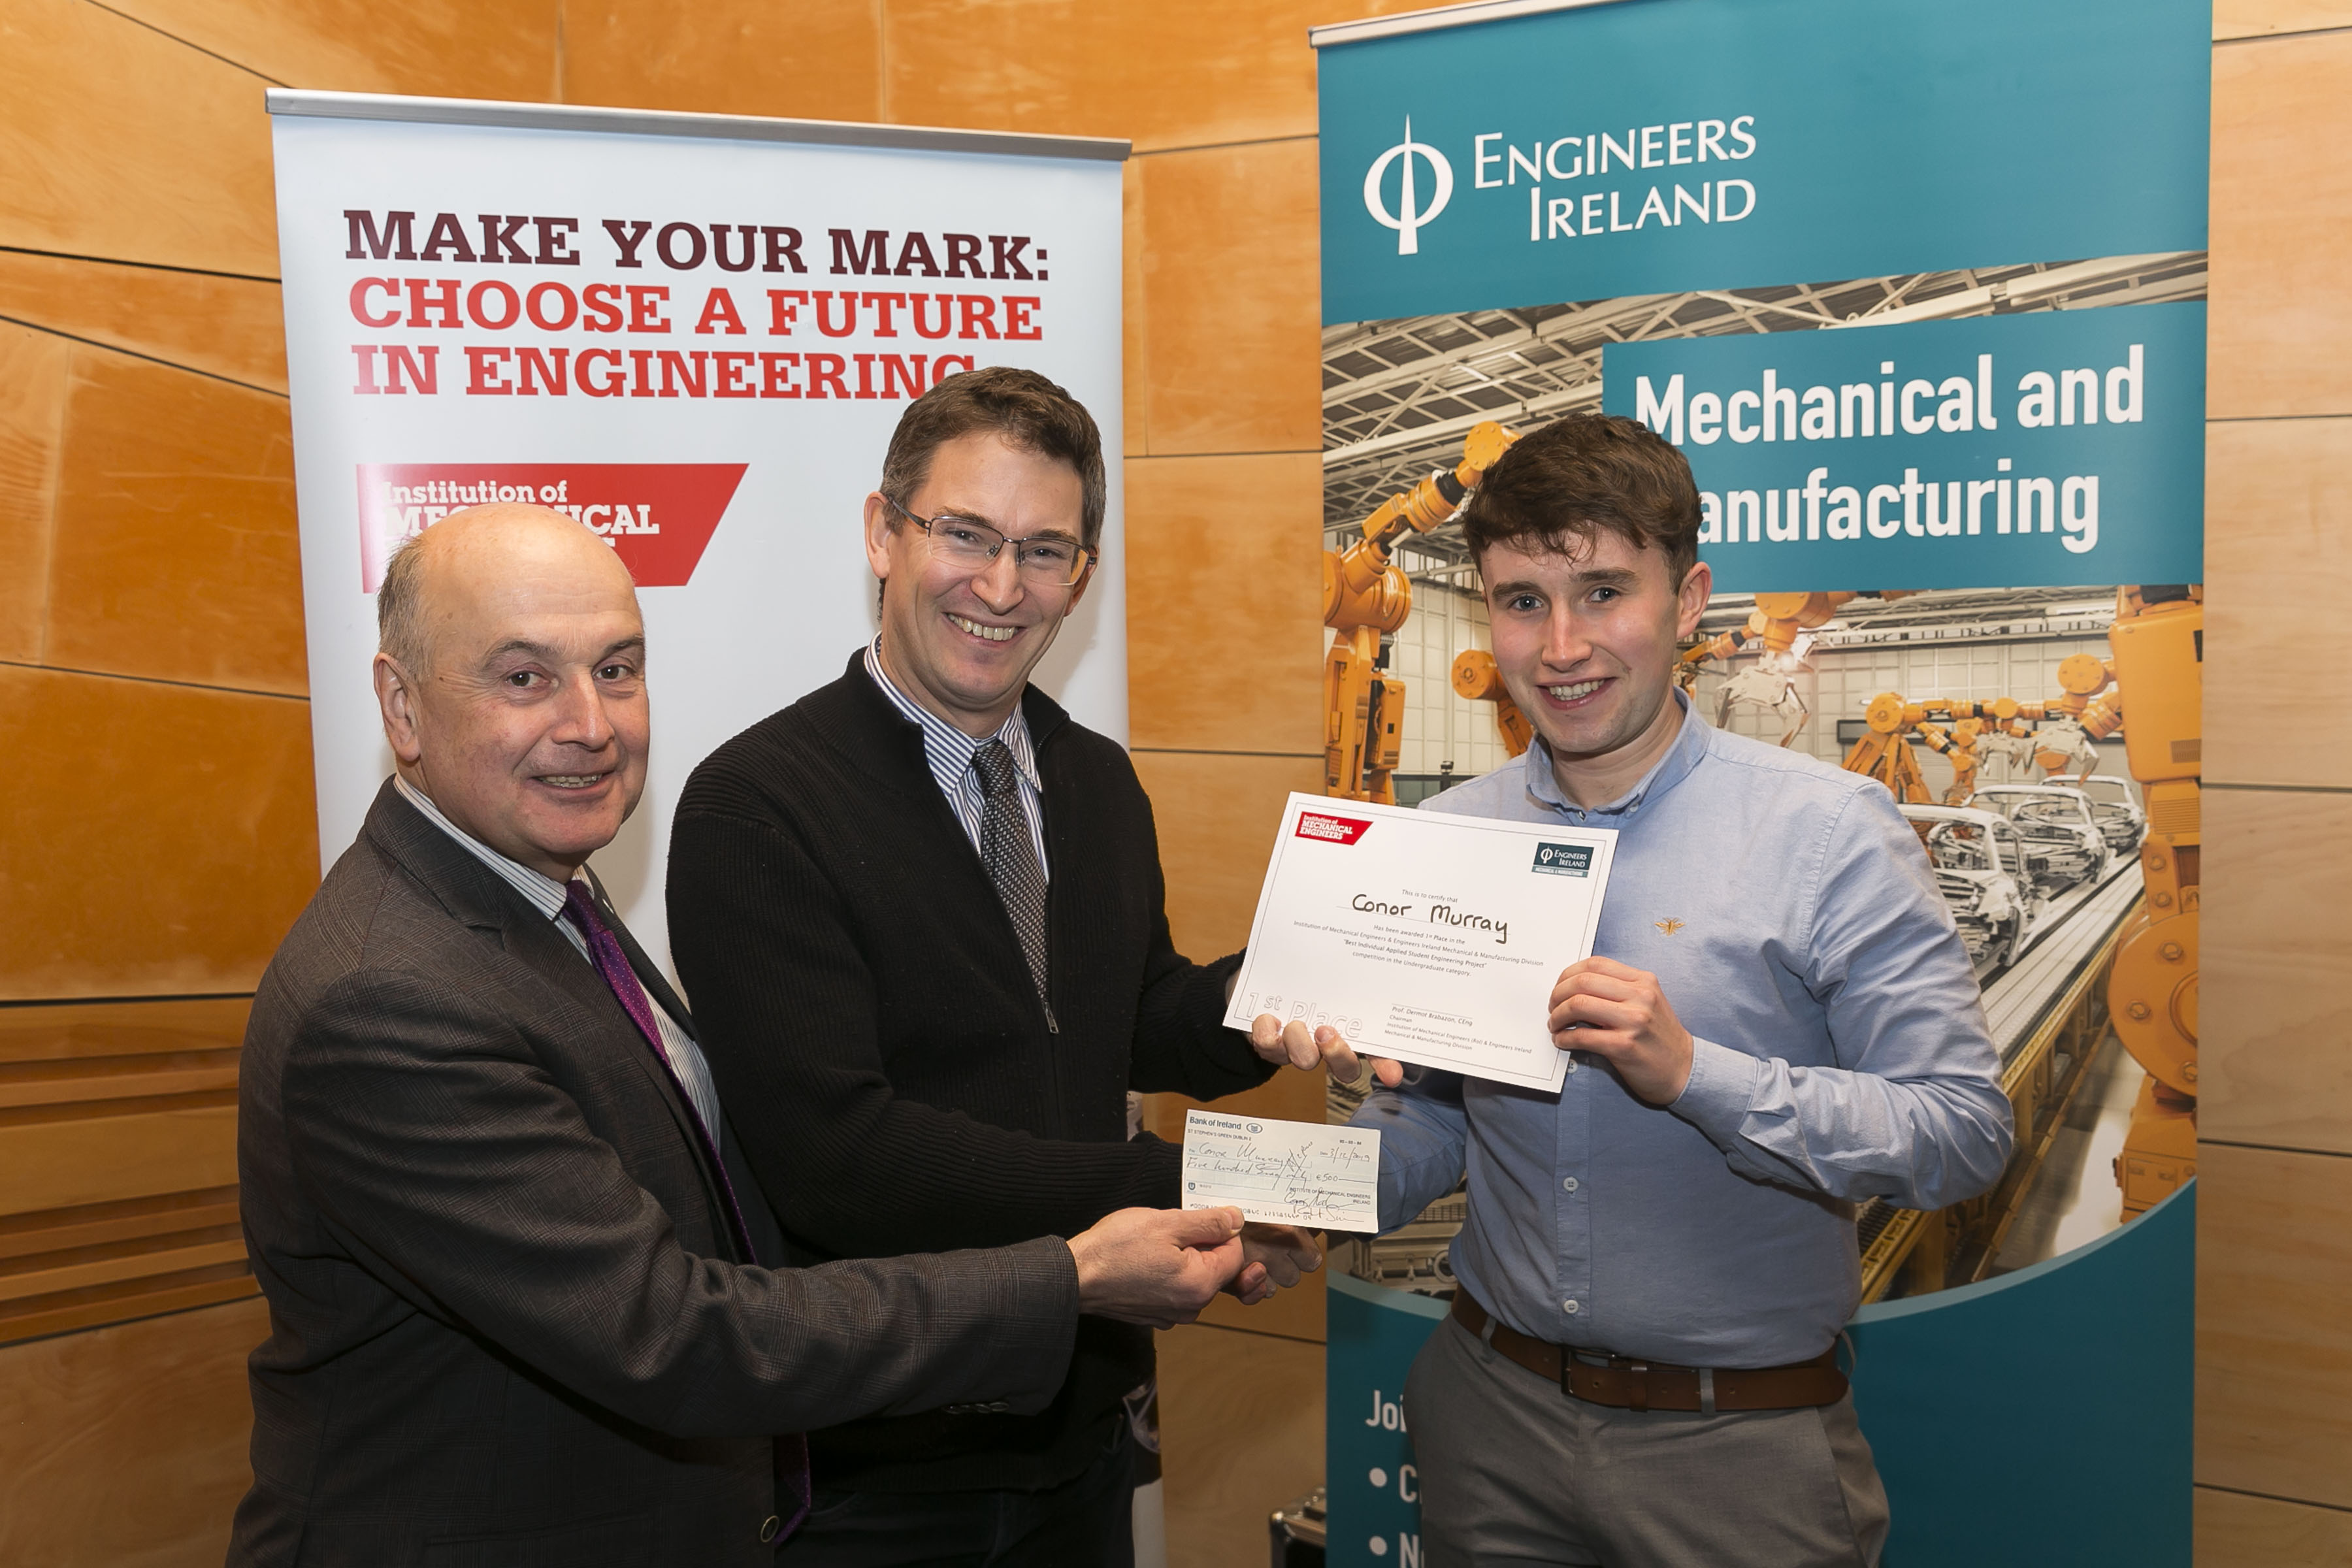 Conor Murray Engineers Ireland Award